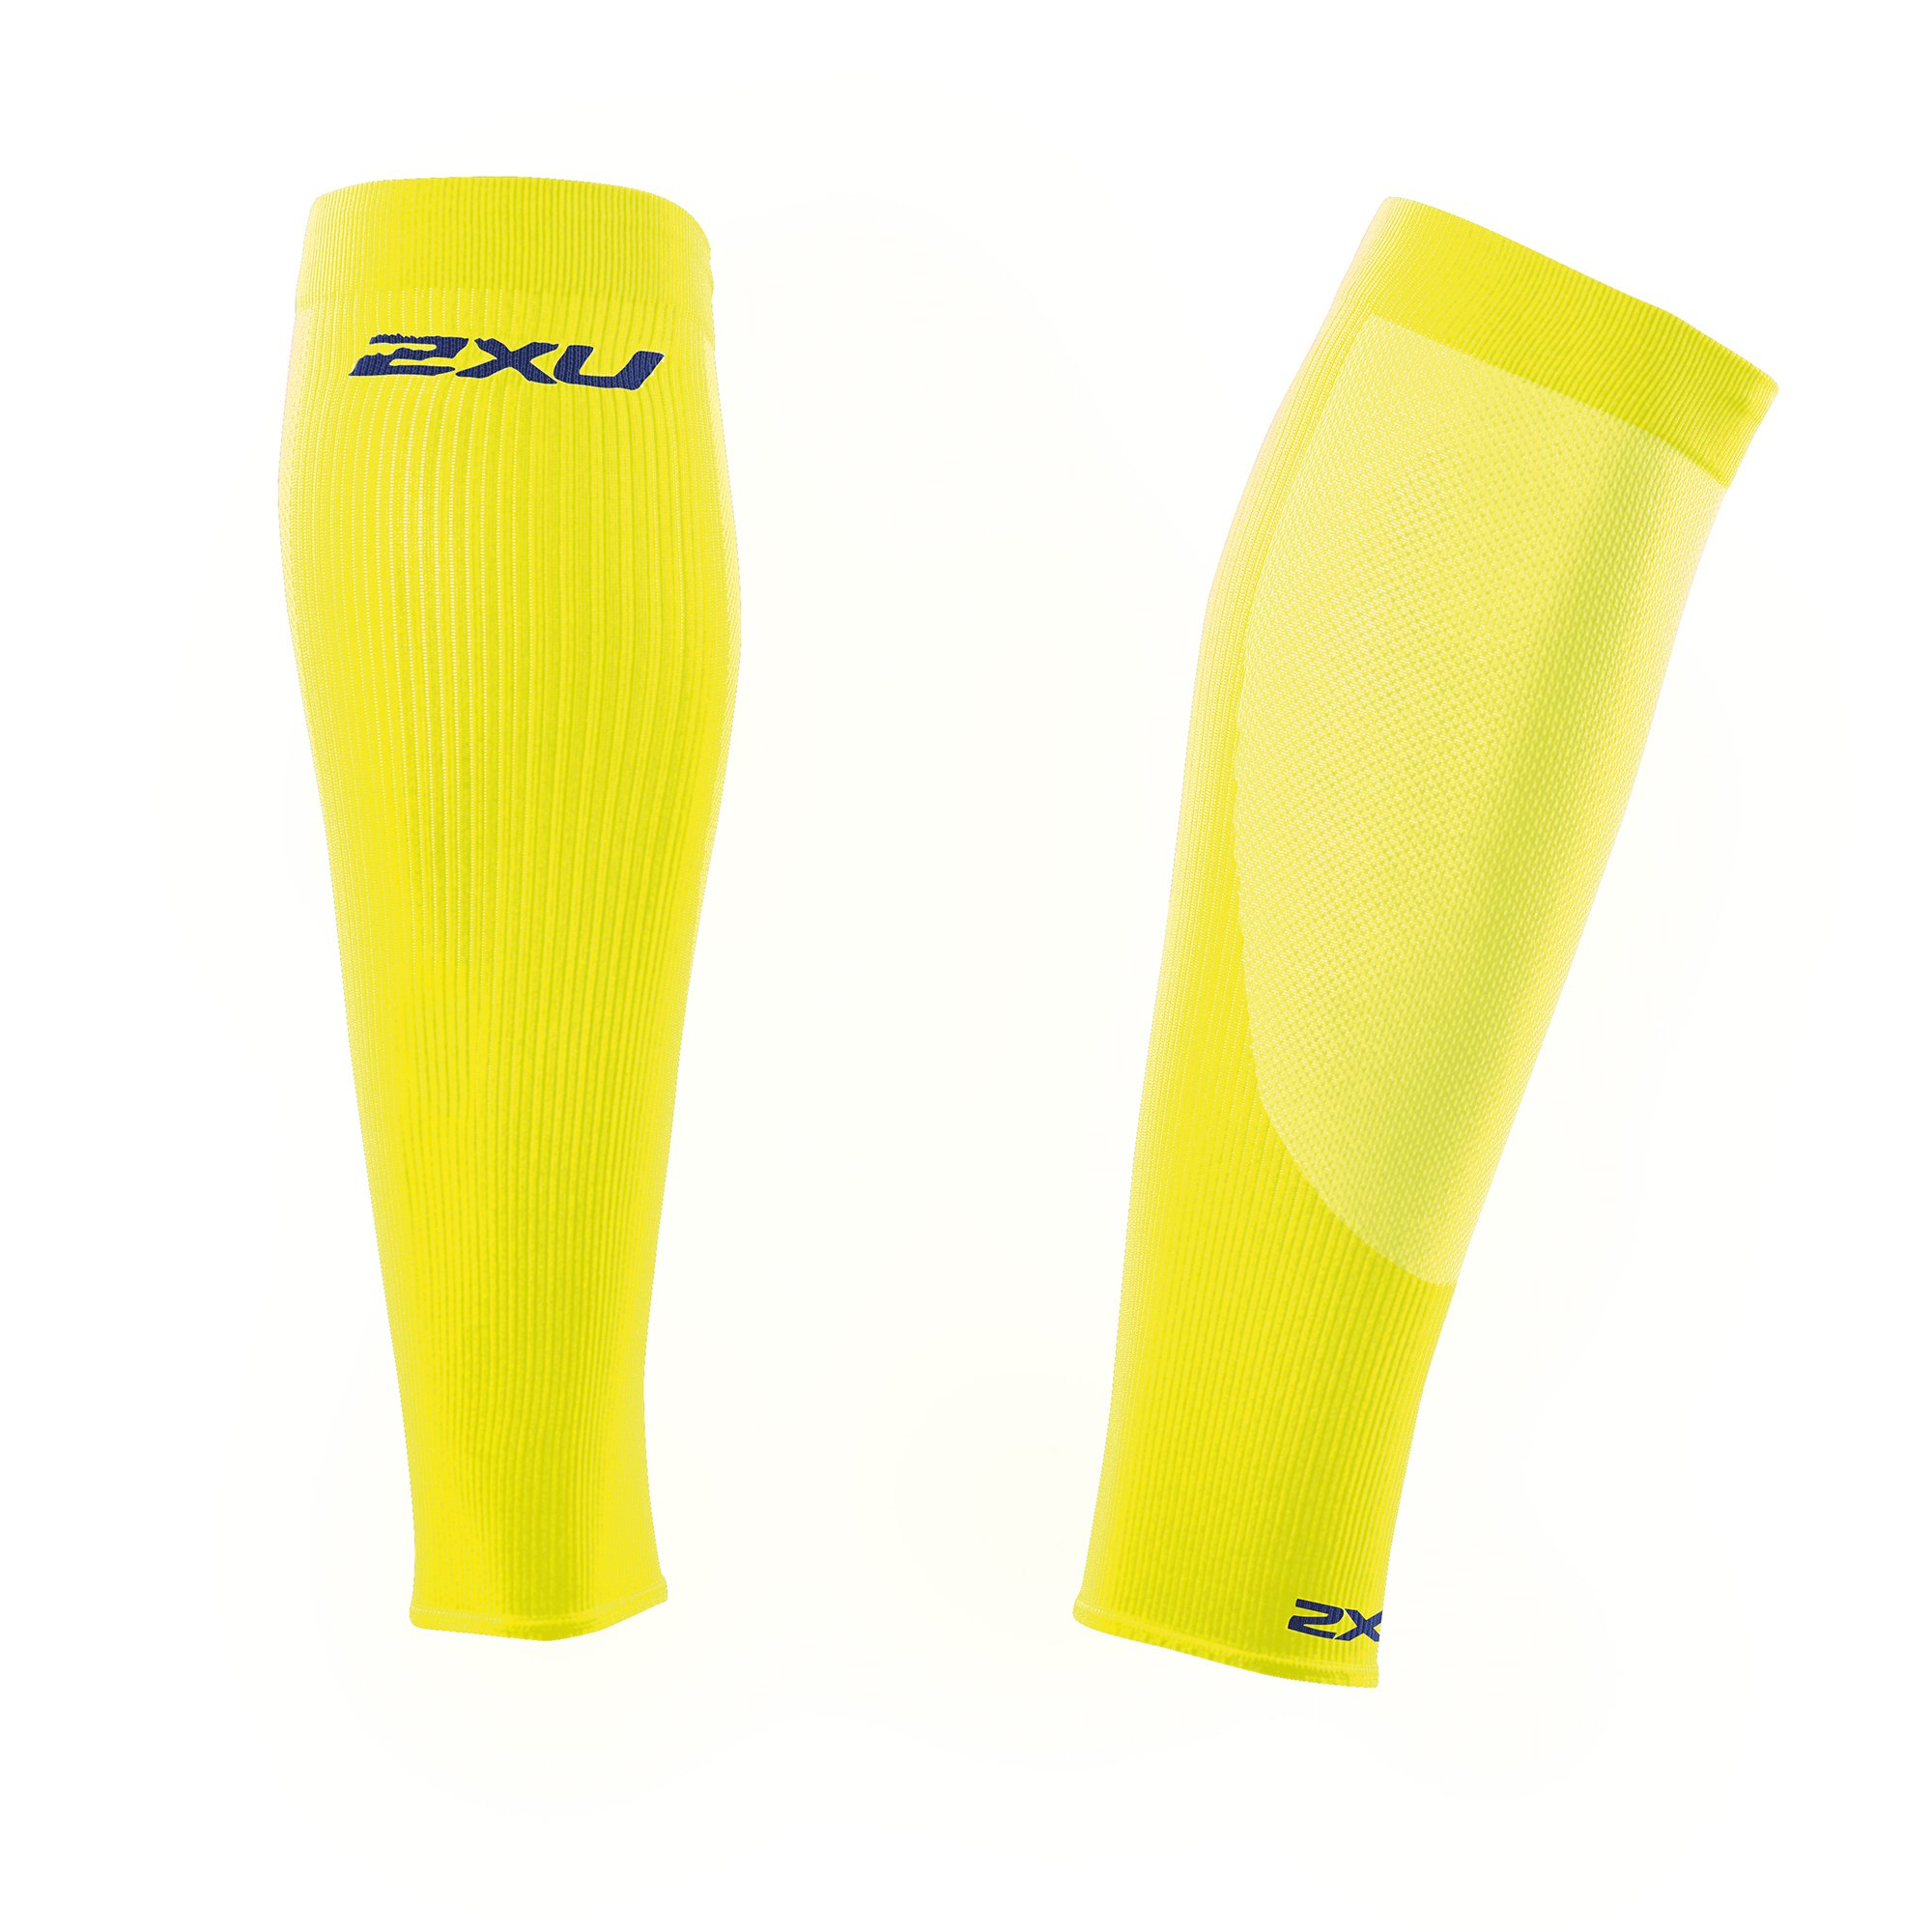 2XU Compression performance Sleeves, Fluro